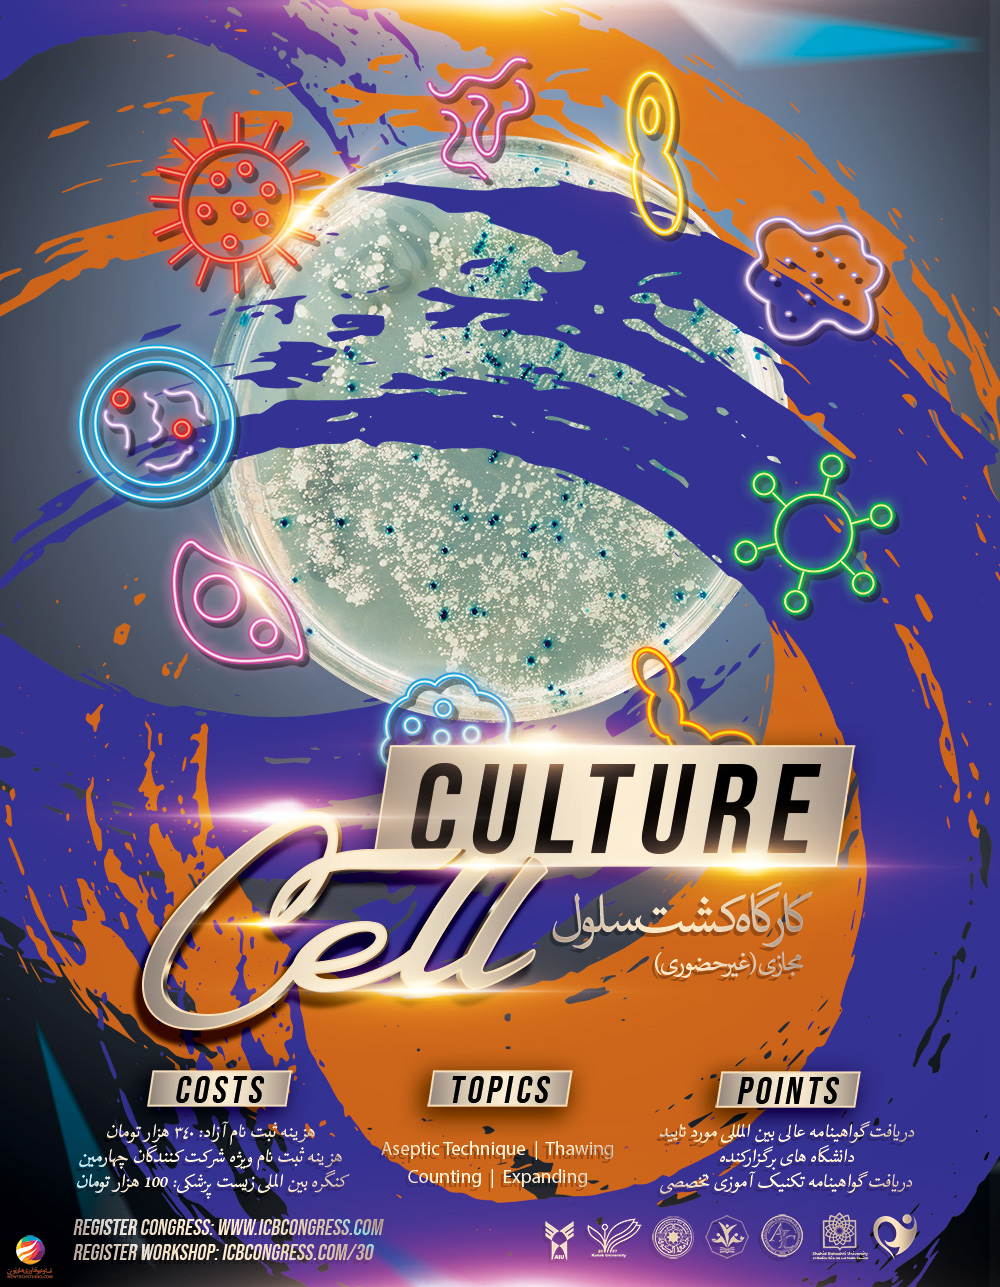 Cell Culture Workshops